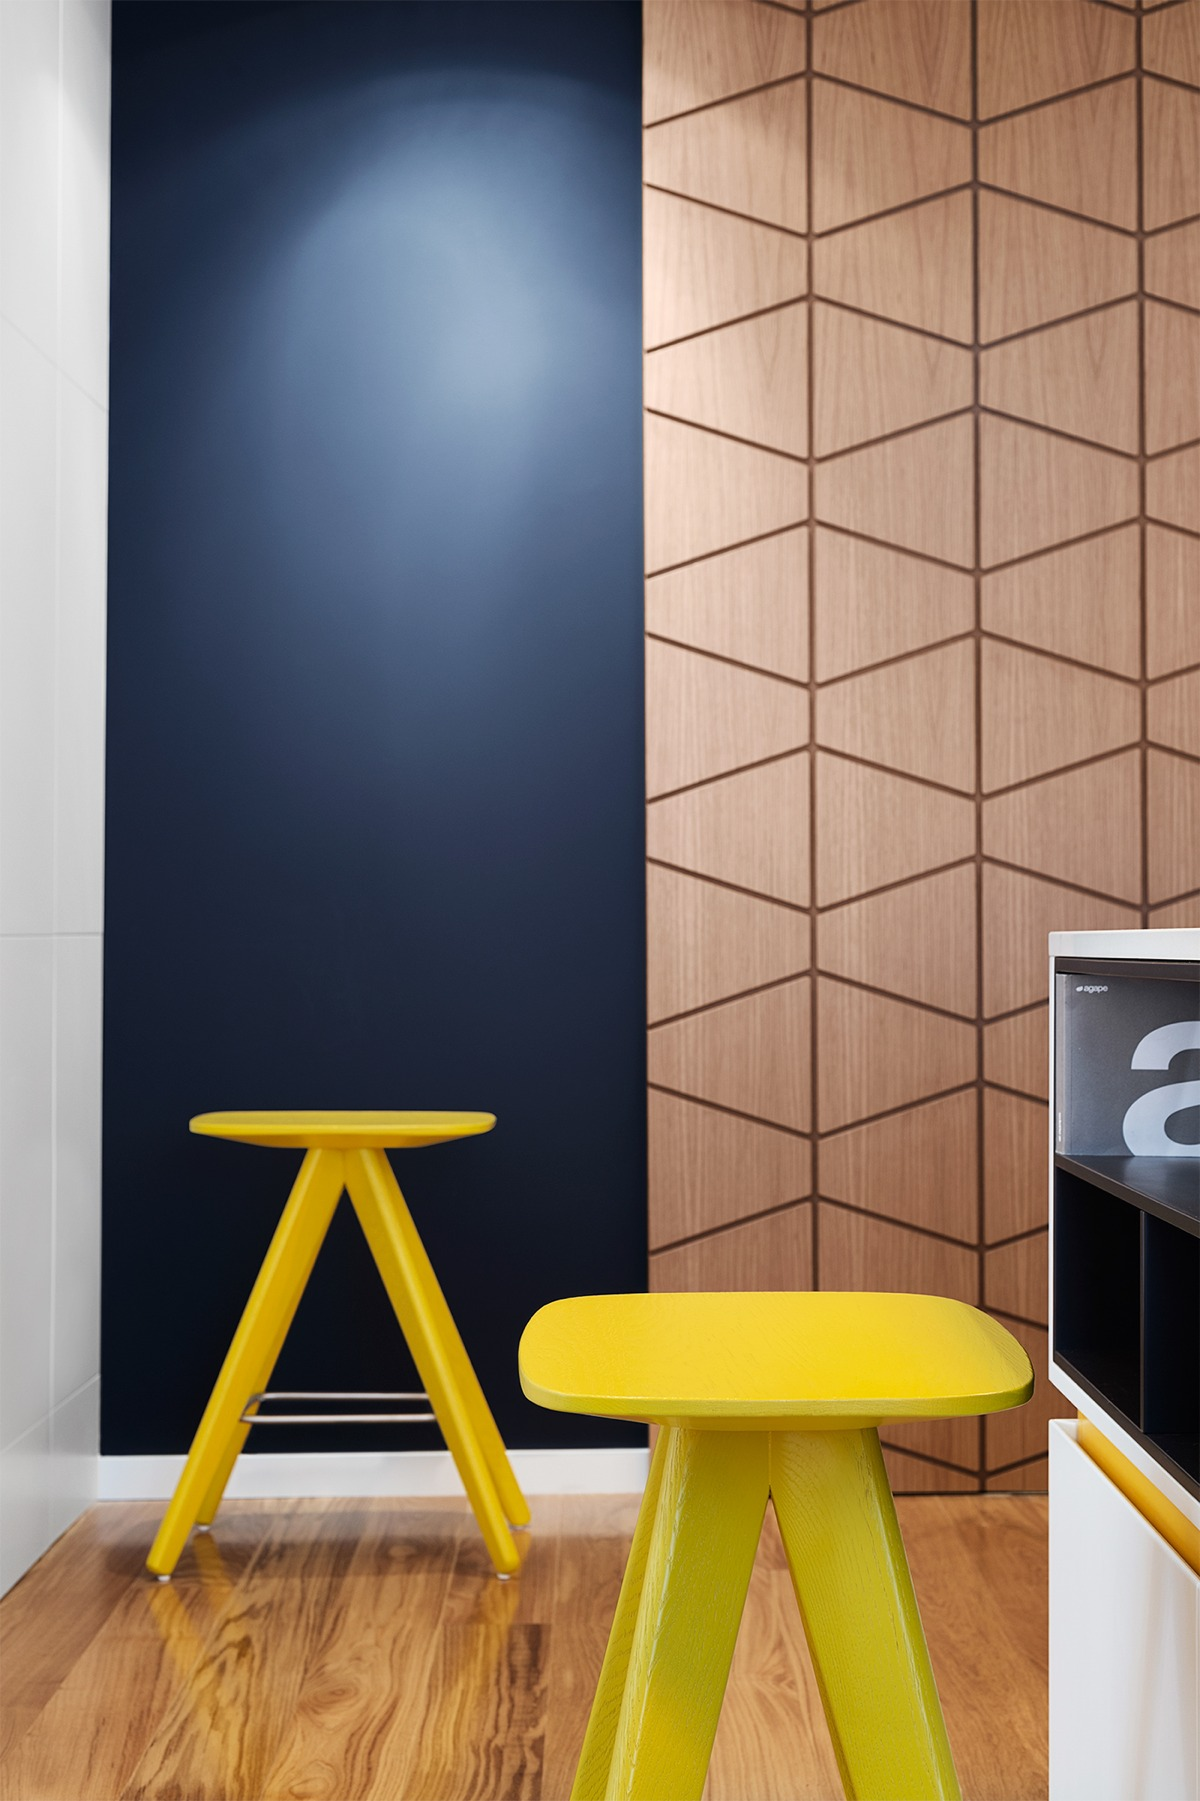 Geometric Interior Design a mid-century inspired apartment with modern geometric accents